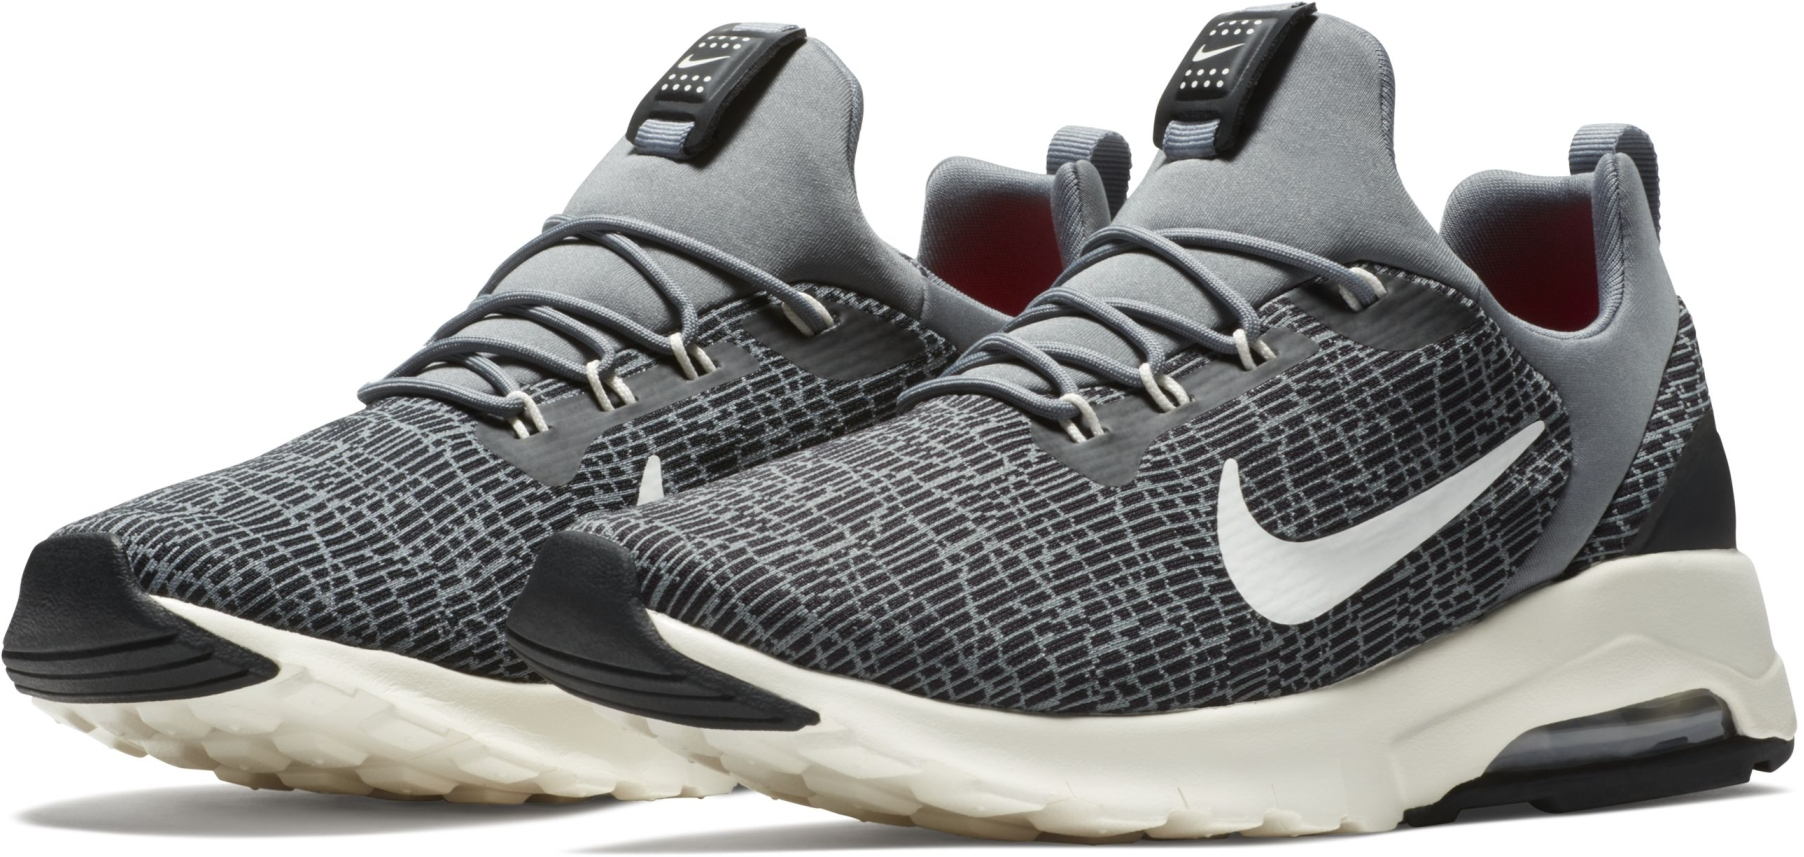 huge selection of 59a89 4606d Nike buty WomenS Air Max Motion LW Racer Shoe 39 (7257403781)